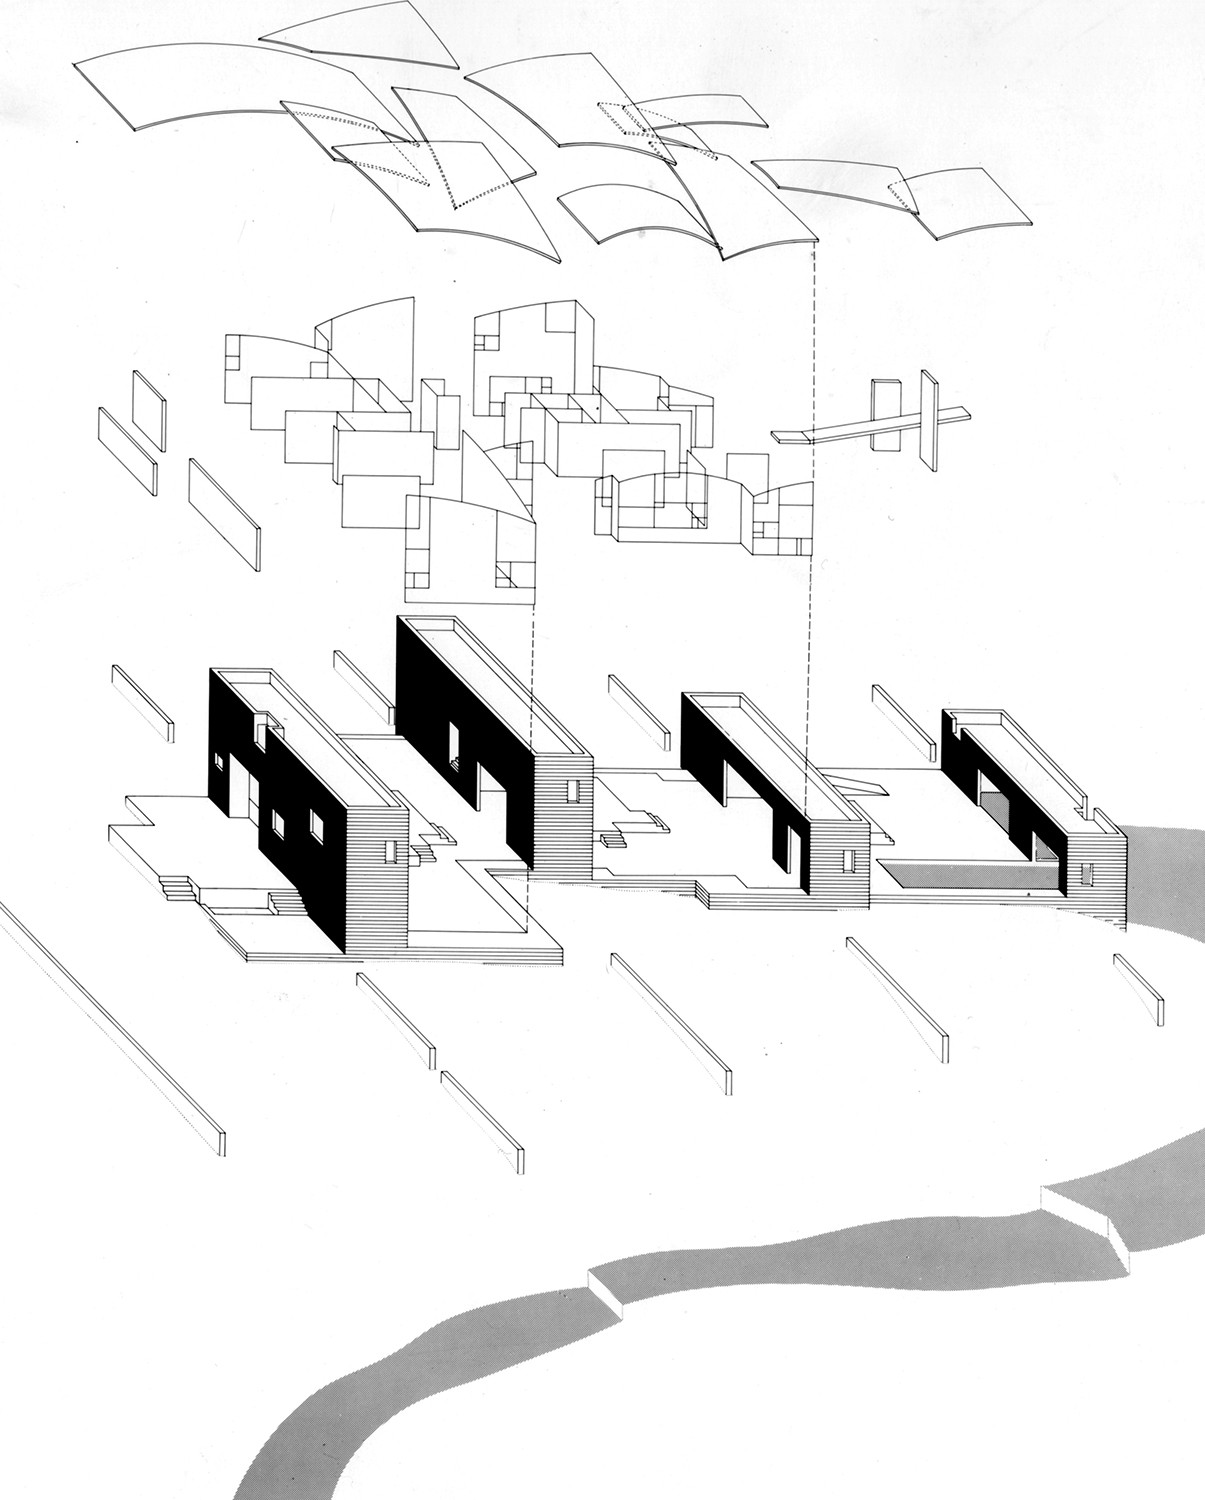 https://stevenholl.sfo2.digitaloceanspaces.com/uploads/projects/project-images/StevenHollArchitects_Stretto_explodedaxon_WV.jpg